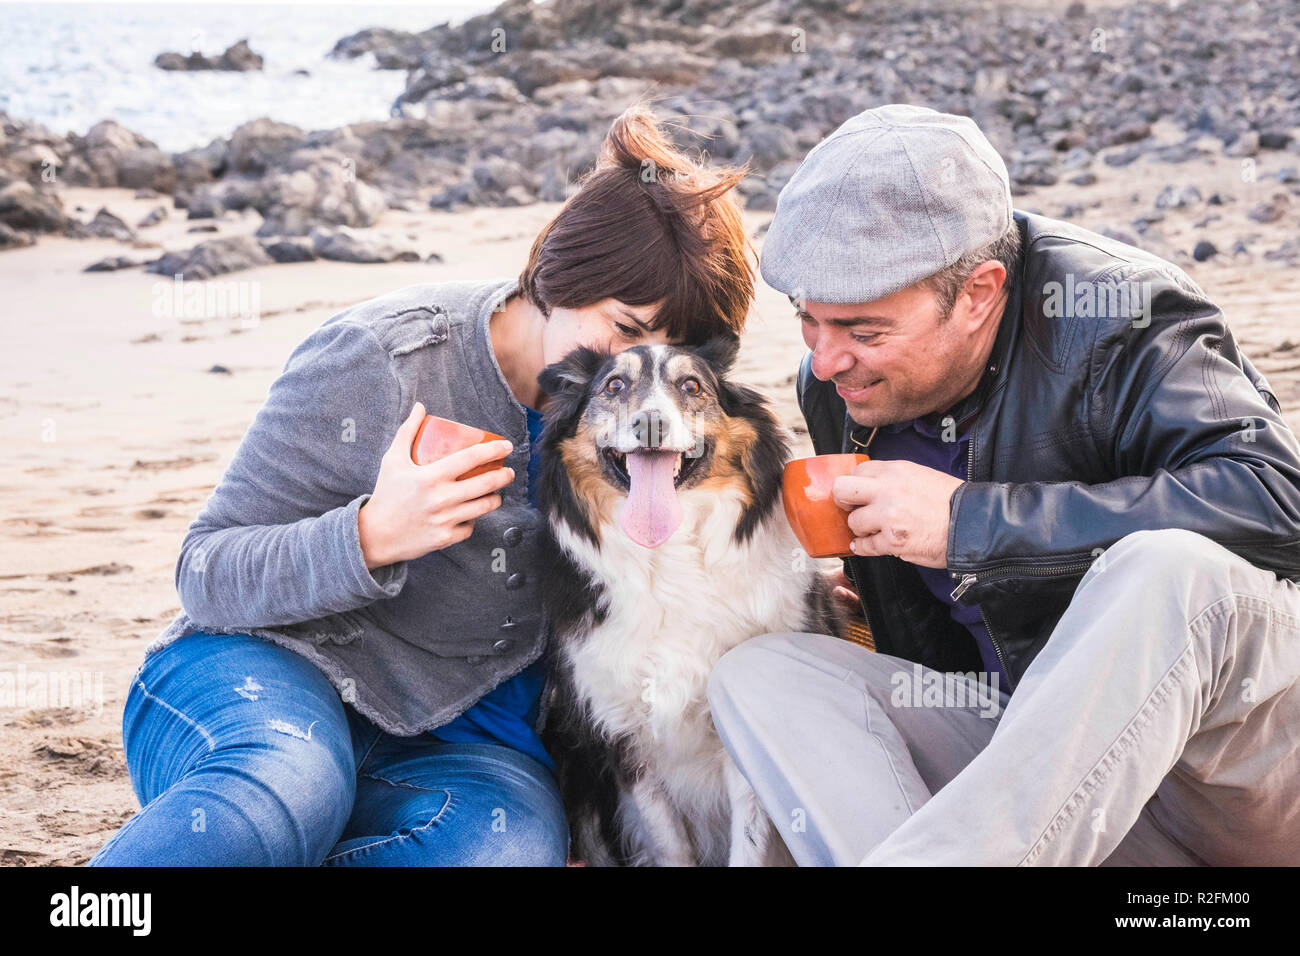 family with a border collie dog doing pic nic activity on the beach in vacation, summer lifestyle with friends concept. old style and vintage filter. tea break time - Stock Image